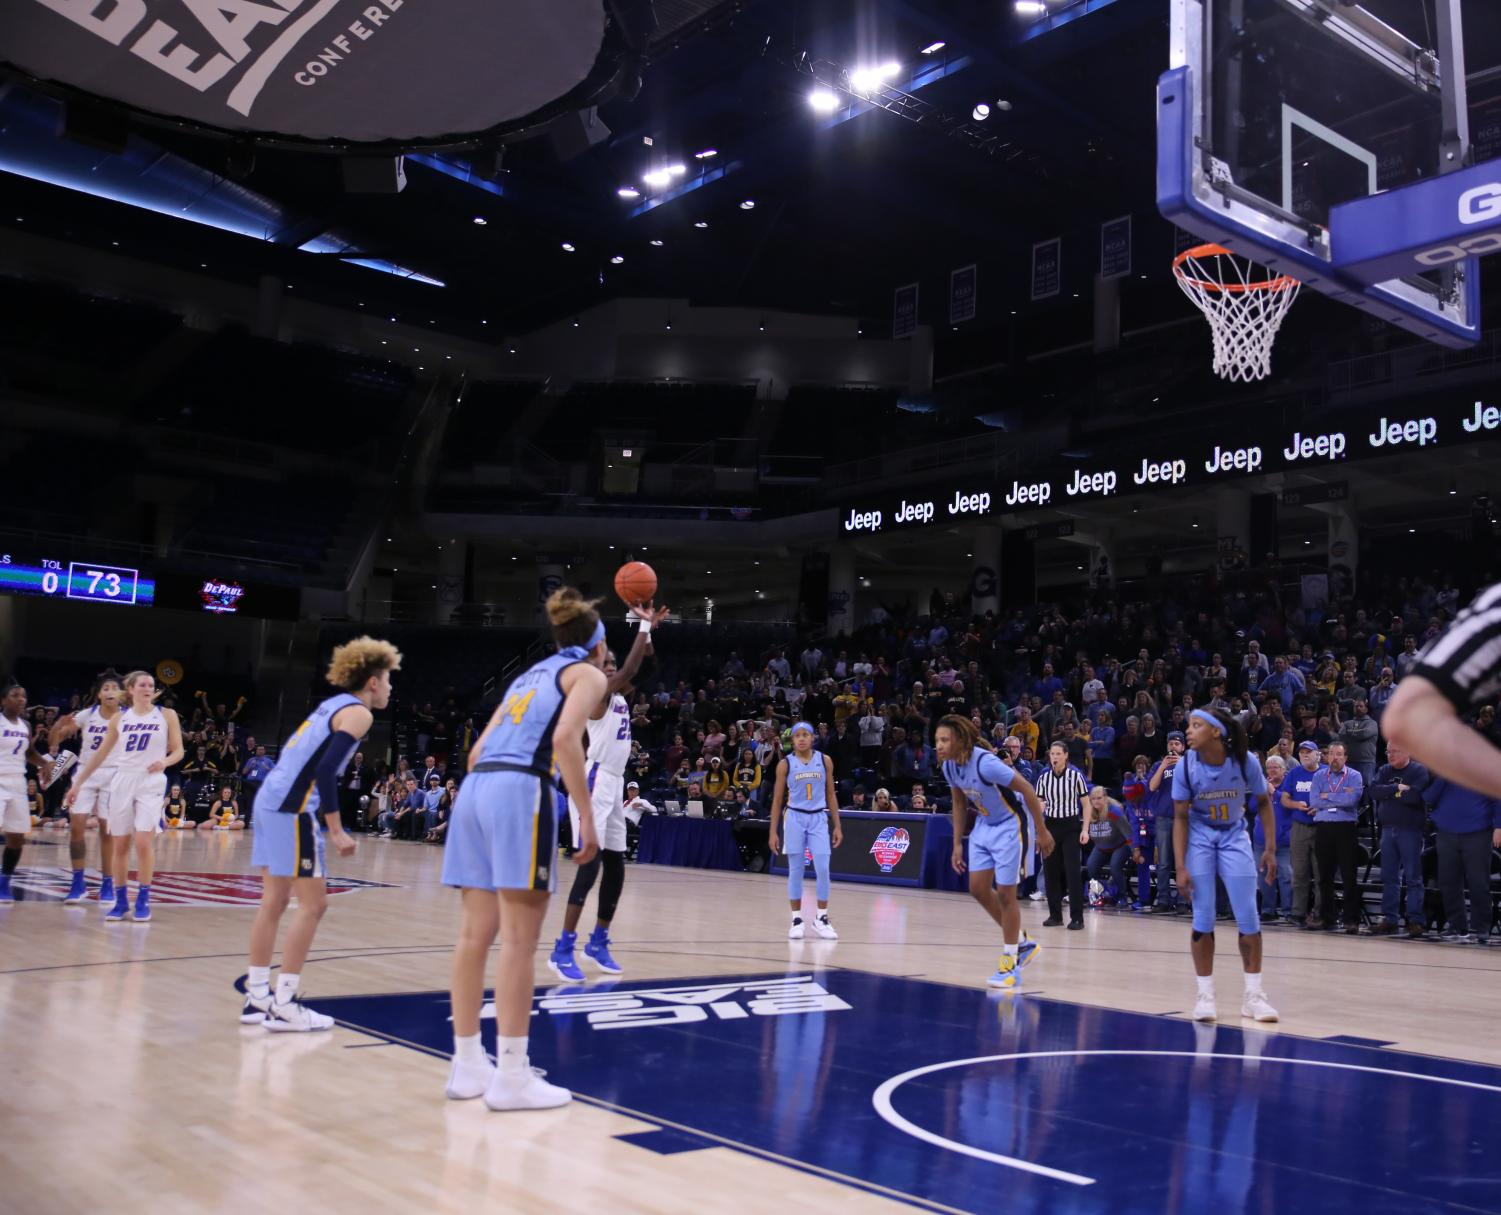 DePaul+junior+forward+Chante+Stonewall+knocks+down+the+game-winning+free+throw+to+help+DePaul+top+Marquette+74-73+in+front+of+a+reported+attendance+of+2%2C407+fans.+Alexa+Sandler+%7C+The+DePaulia